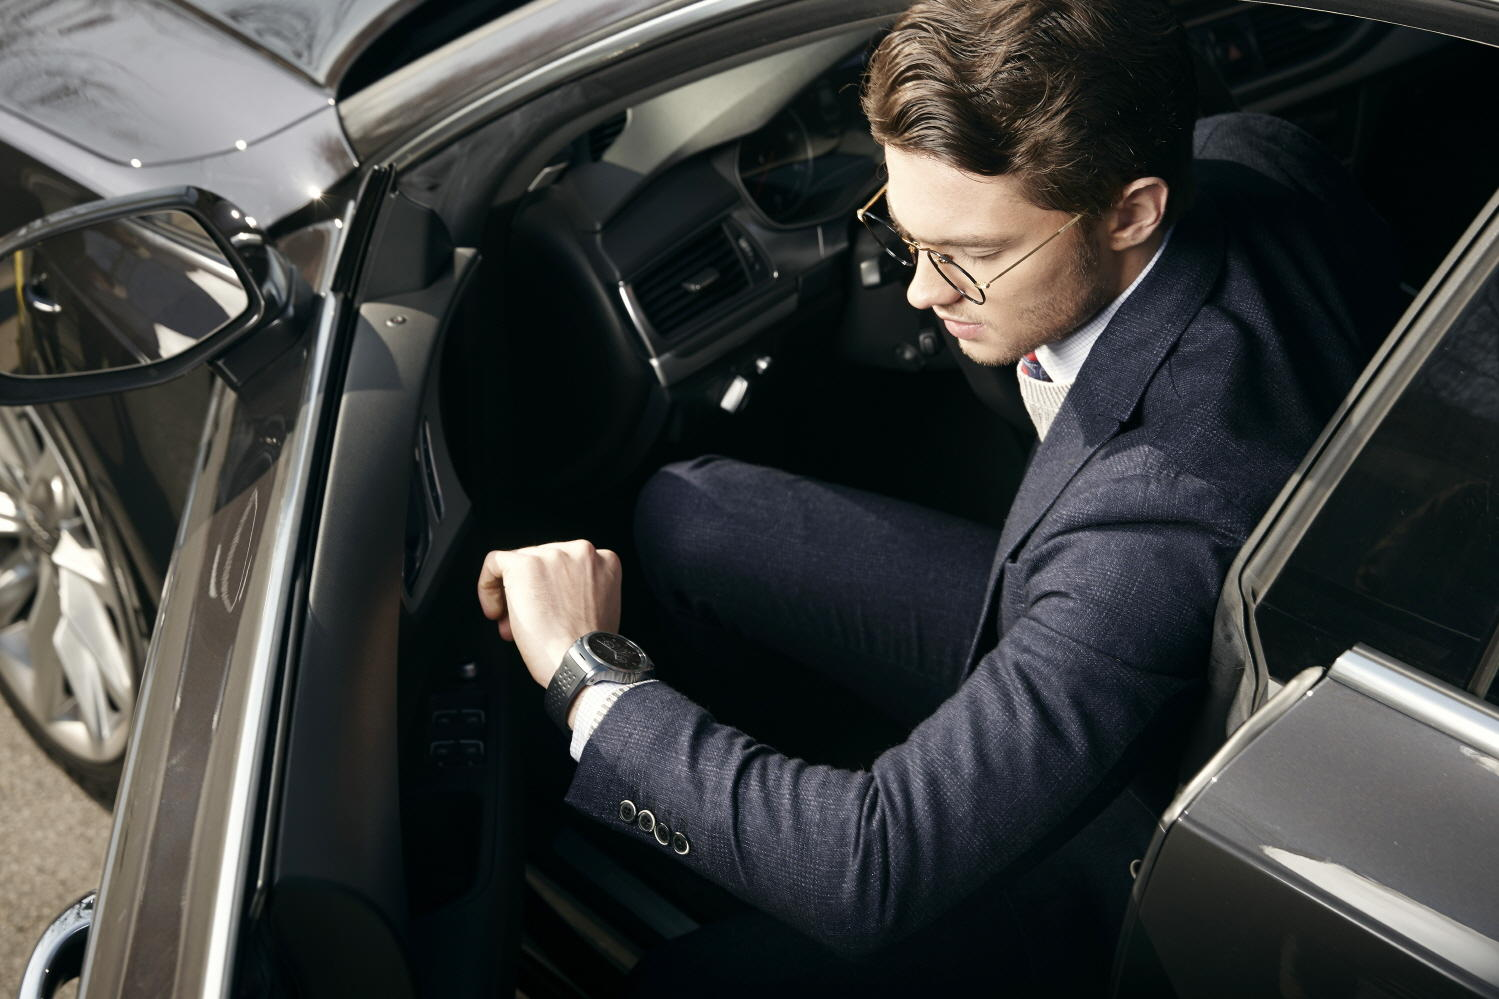 LG unveils first 4G smartwatch, based on WebOS software